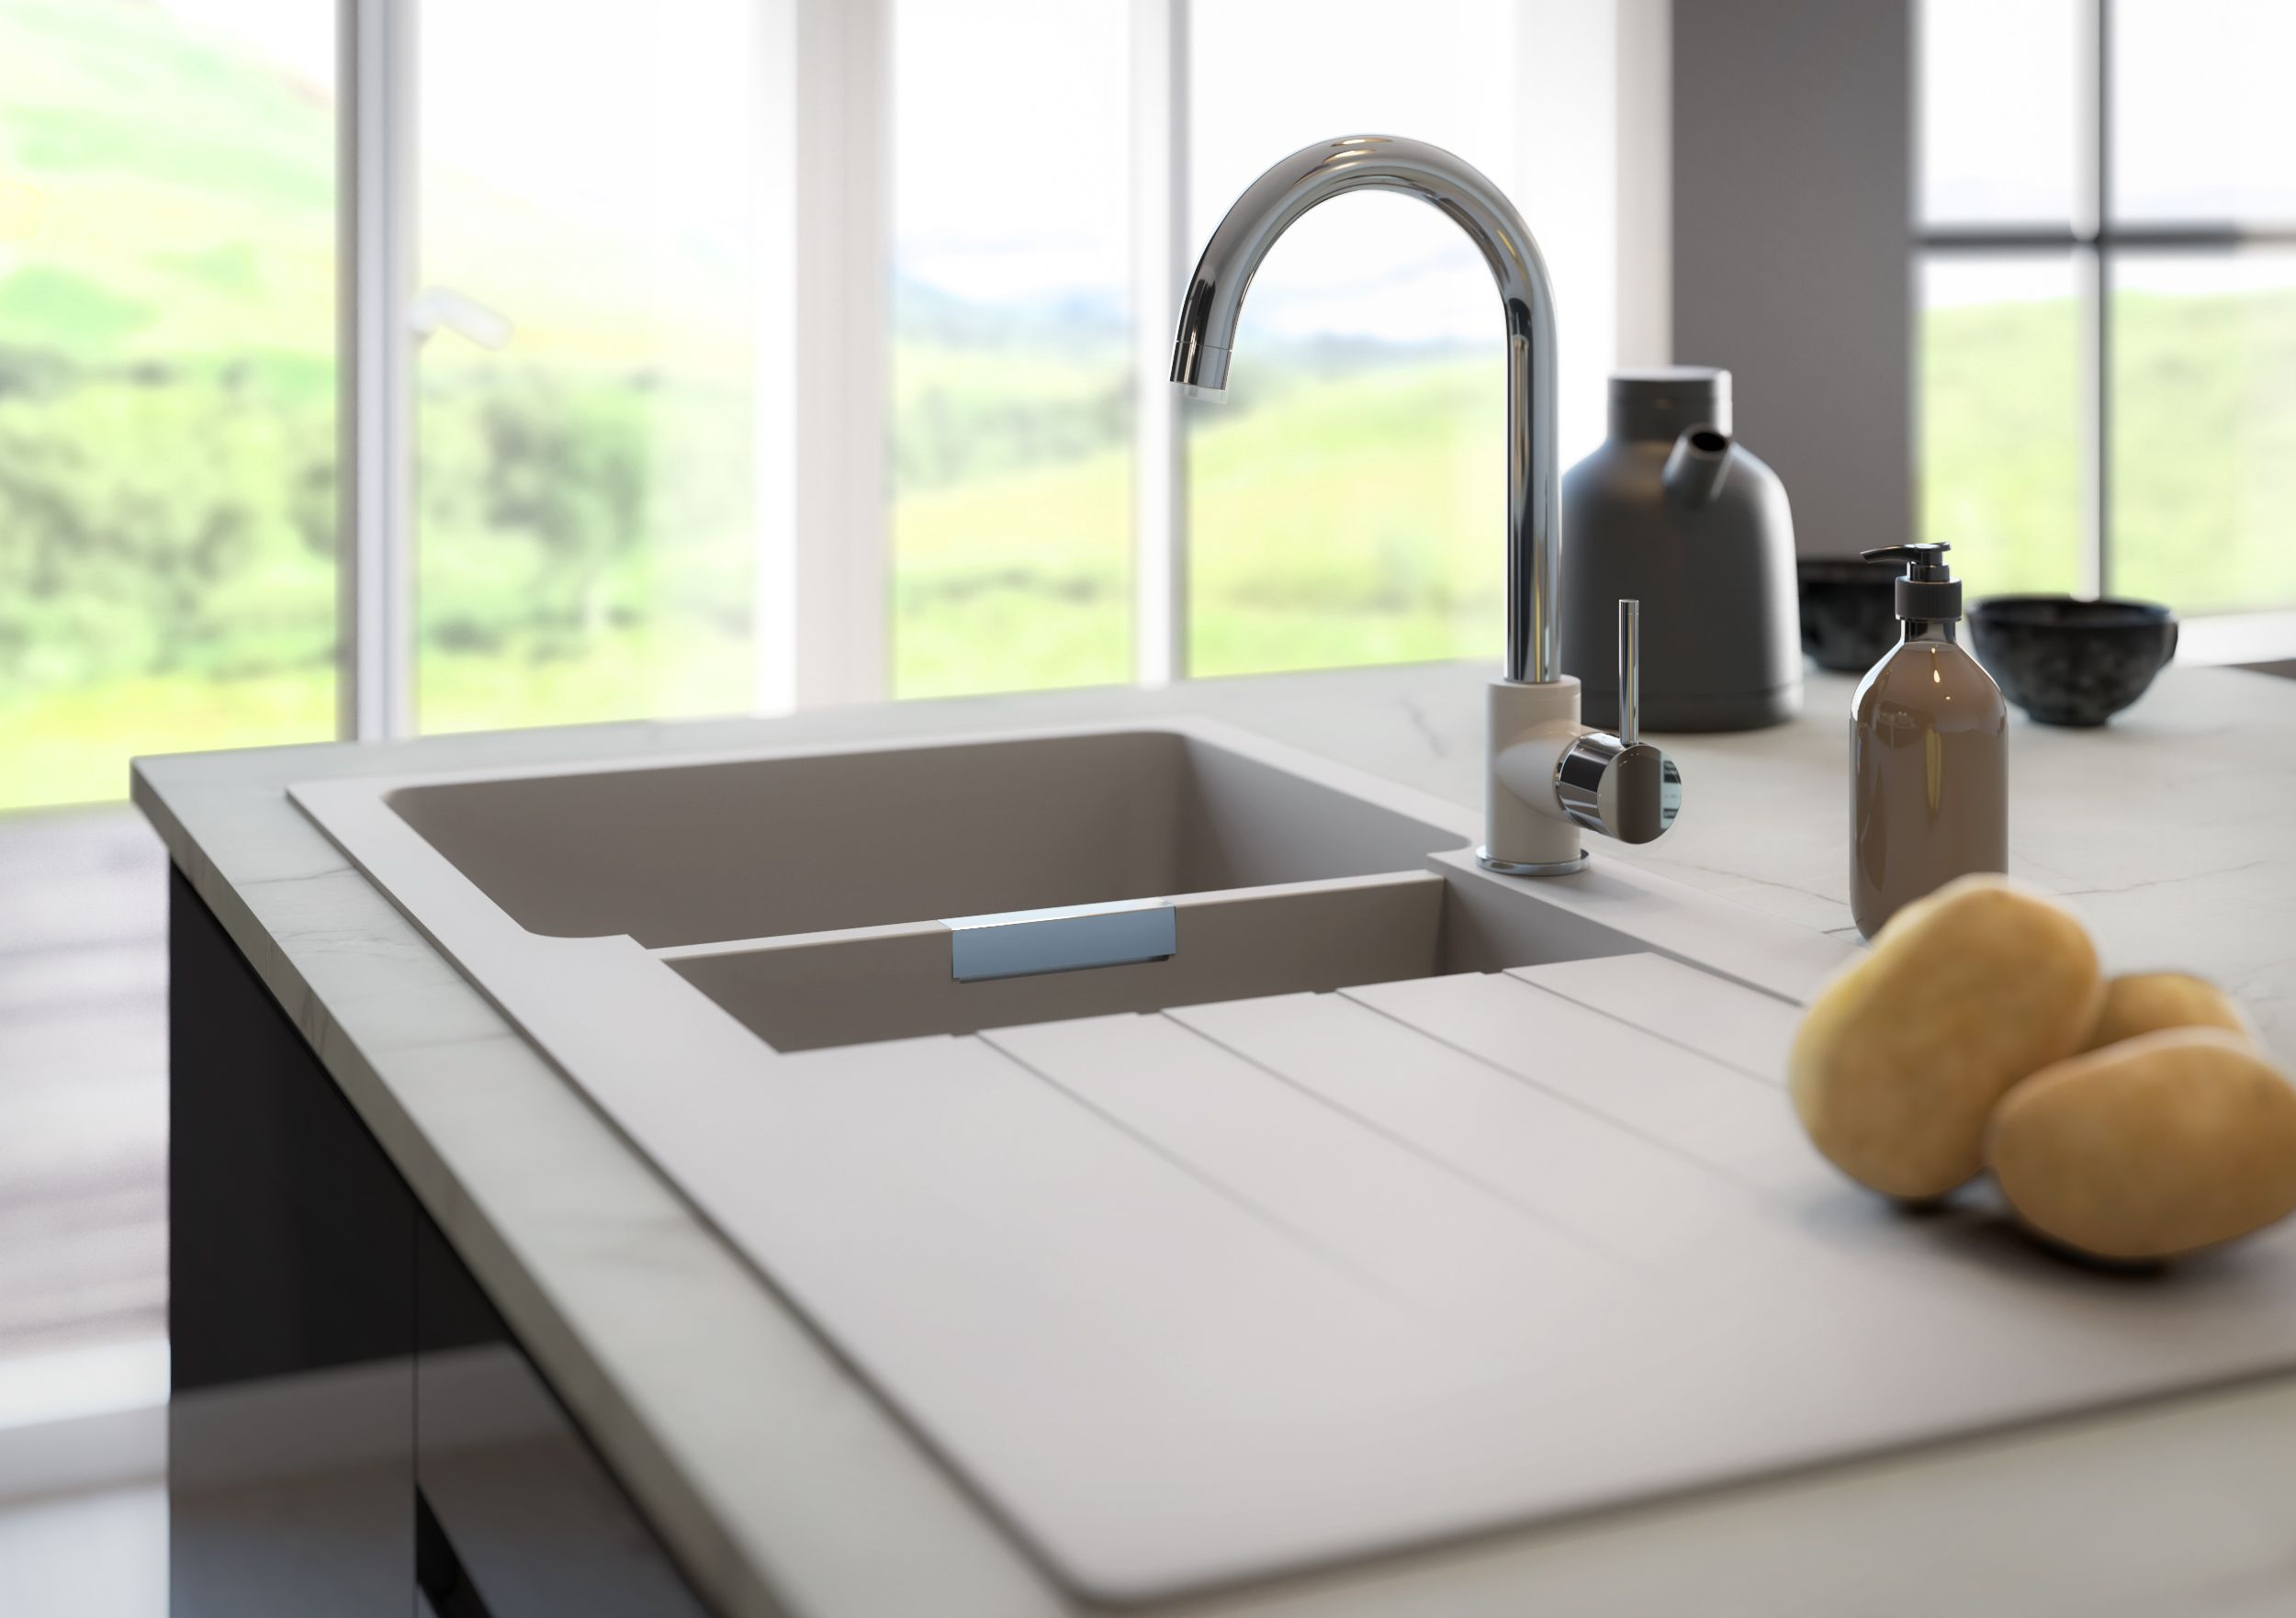 Marble worktops are a perfect way to keep the room light